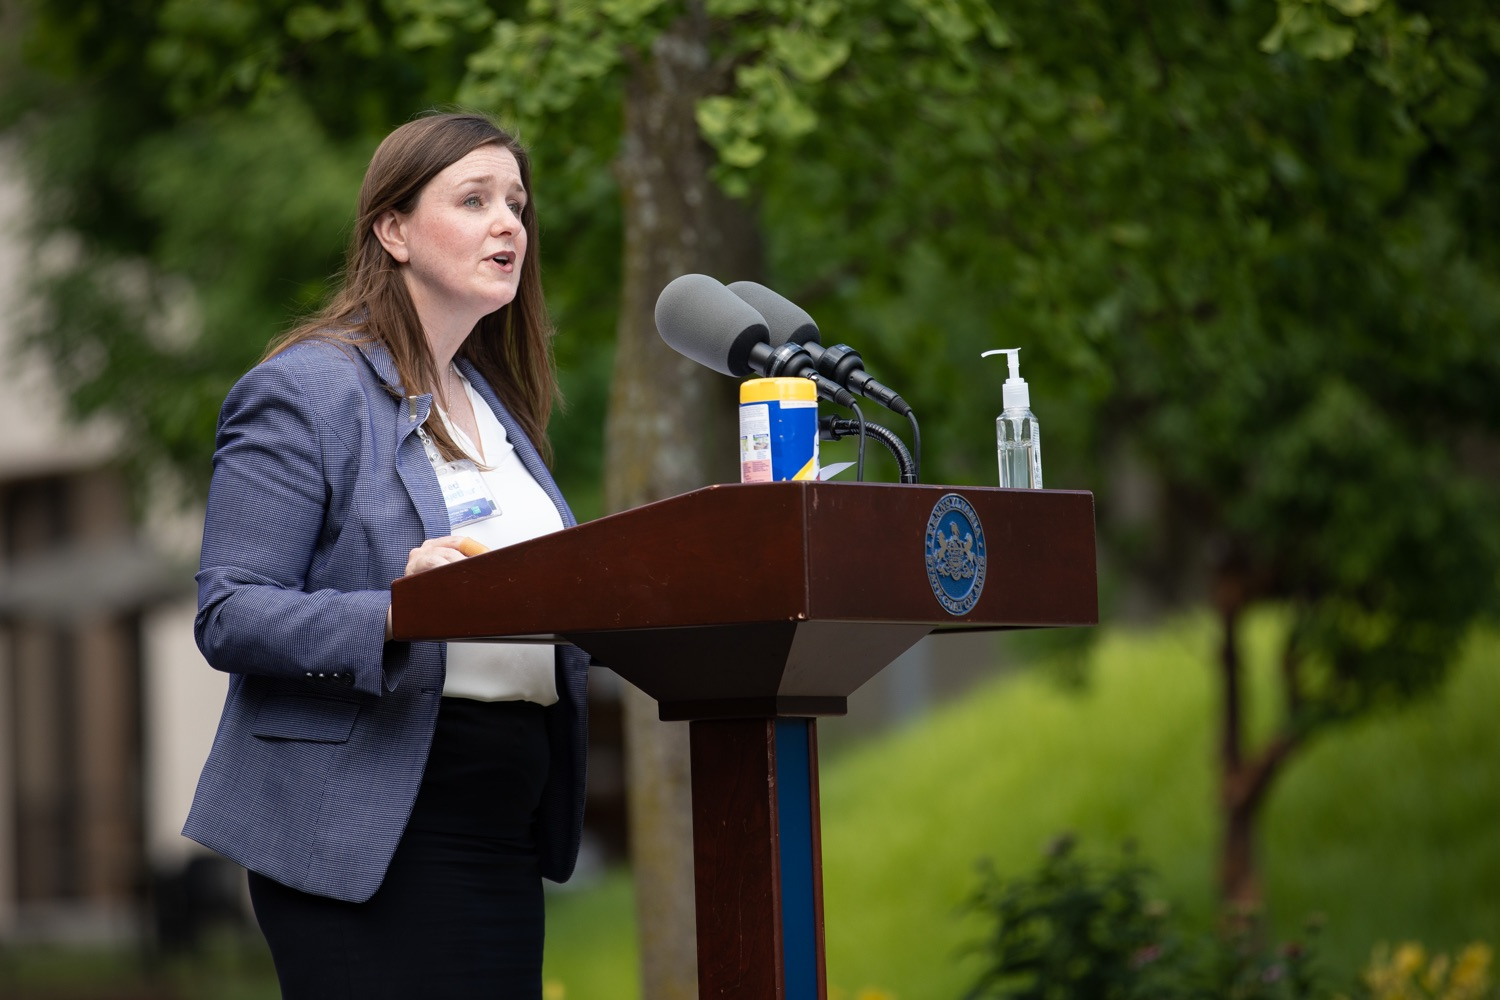 "<a href=""https://filesource.wostreaming.net/commonwealthofpa/photo/18093_gov-healthcare_workers_dz_13.jpg"" target=""_blank"">⇣ Download Photo<br></a>Deborah Berini, president, Penn State Health Milton S. Hershey Medical Center speaking during the Governors visit to Hershey Medical Center.As the commonwealth continues its measured, phased reopening and COVID-19 case counts continue to decline, Governor Tom Wolf visited Penn State Milton S. Hershey Medical Center today to thank staff and learn more about how the facility is handling the pandemic and preparing for a possible resurgence in the fall.  Harrisburg, PA  June 24, 2020"